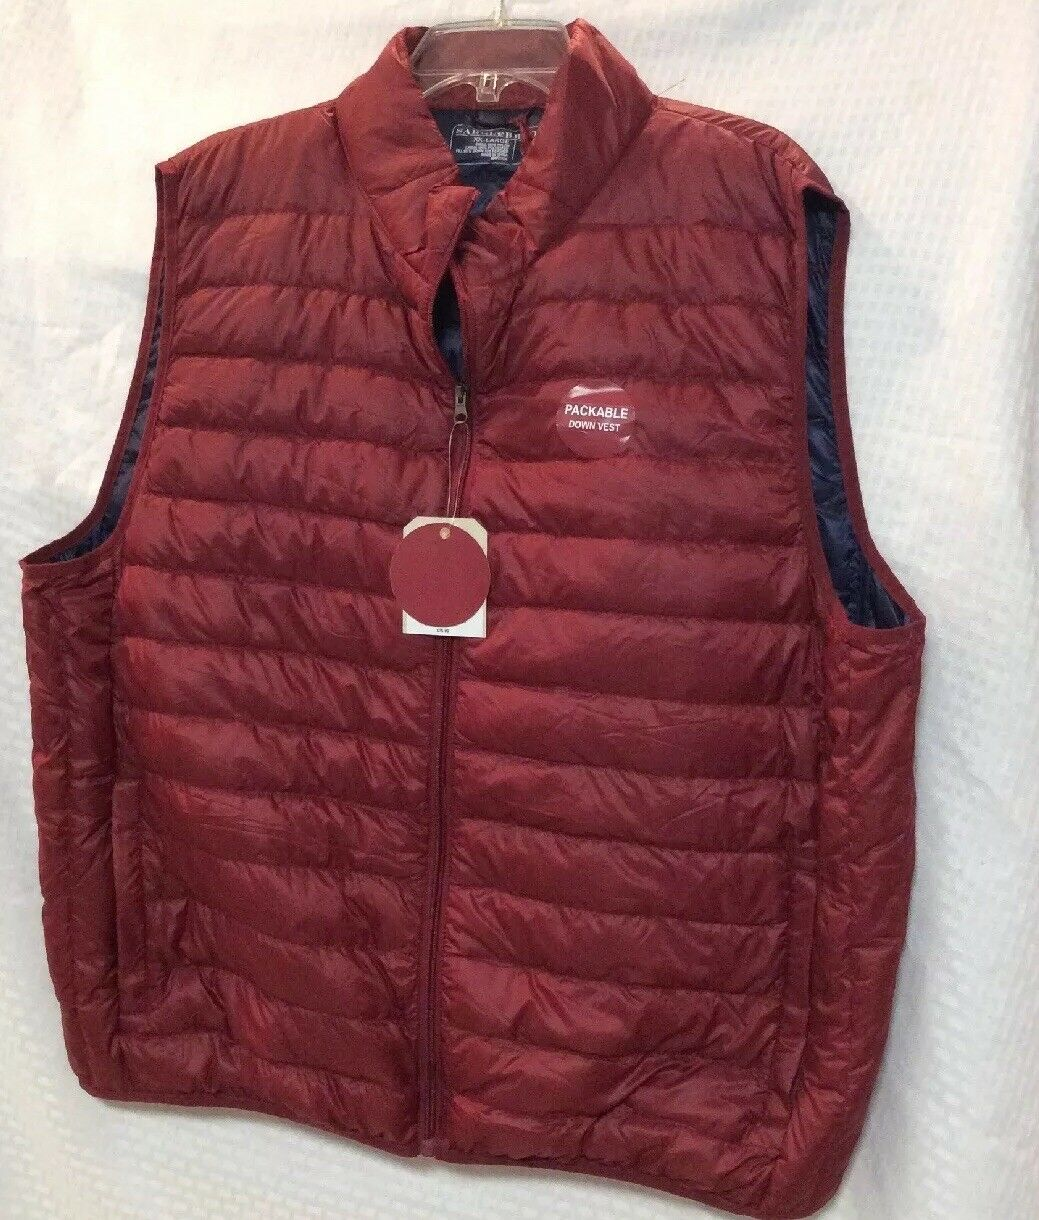 New Saddlebred Down Puffer Vest  Size XX-Large color Navajo Red